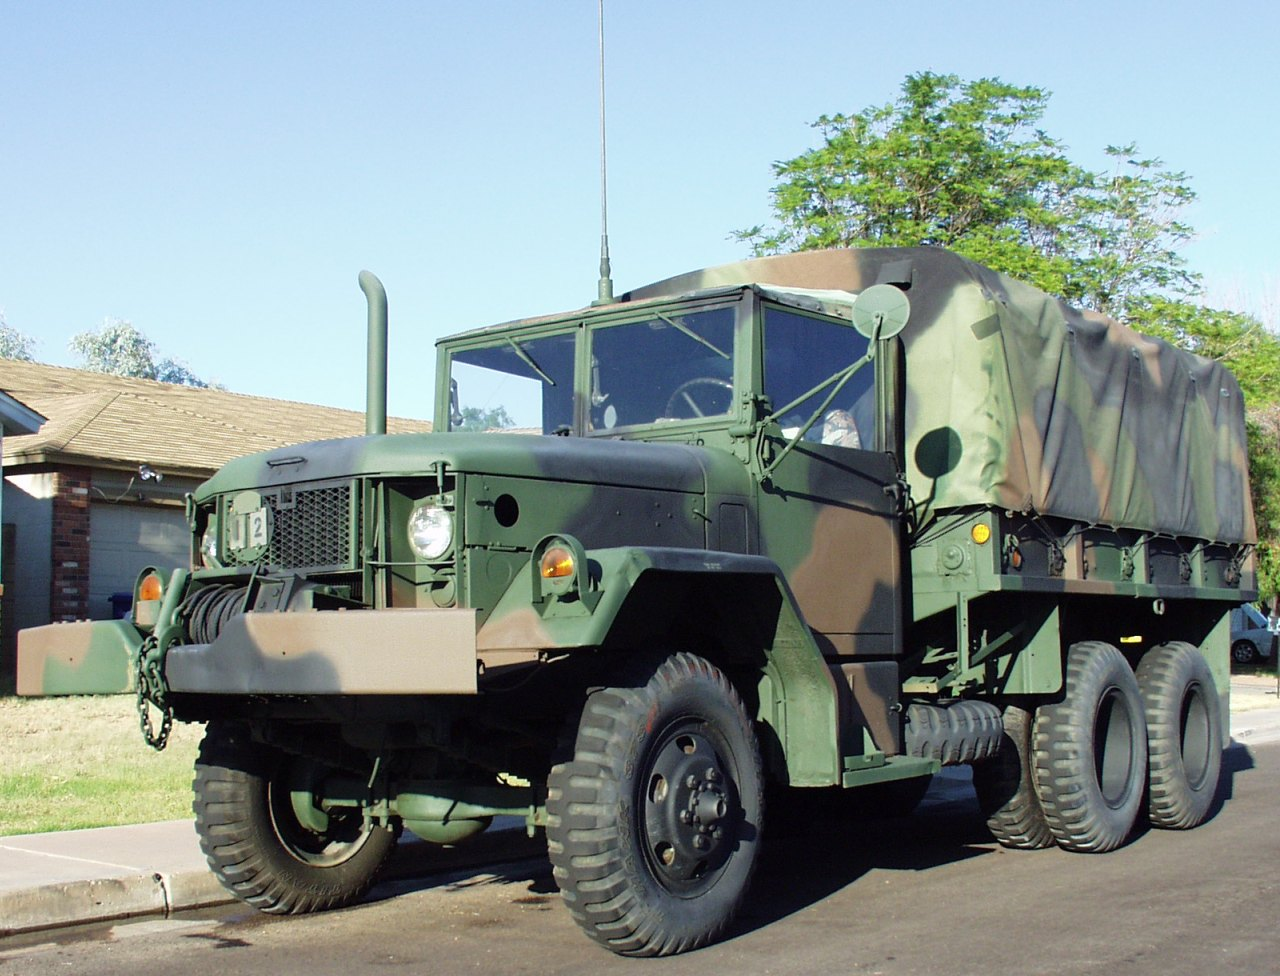 File:M35A2 with winch.jpg - Wikipedia